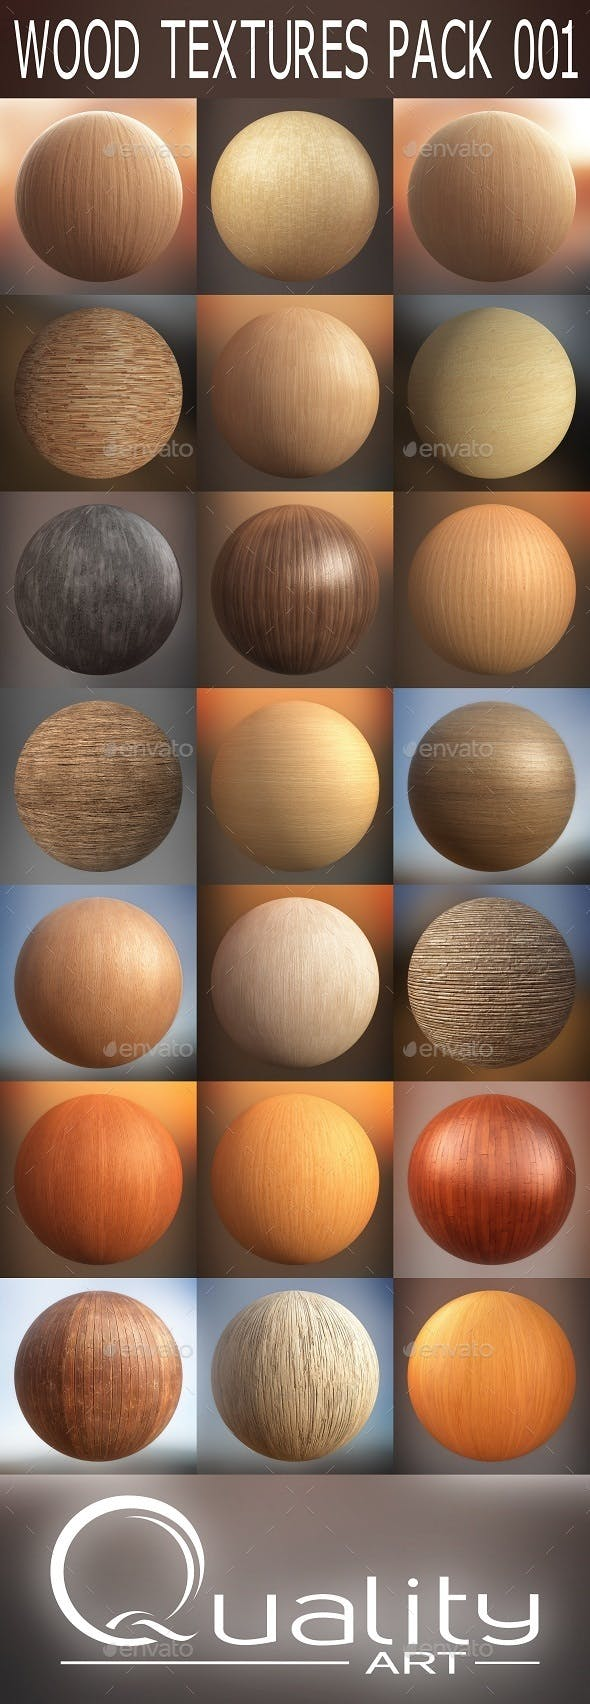 WOOD TEXTURES PACK 001 - 3DOcean Item for Sale